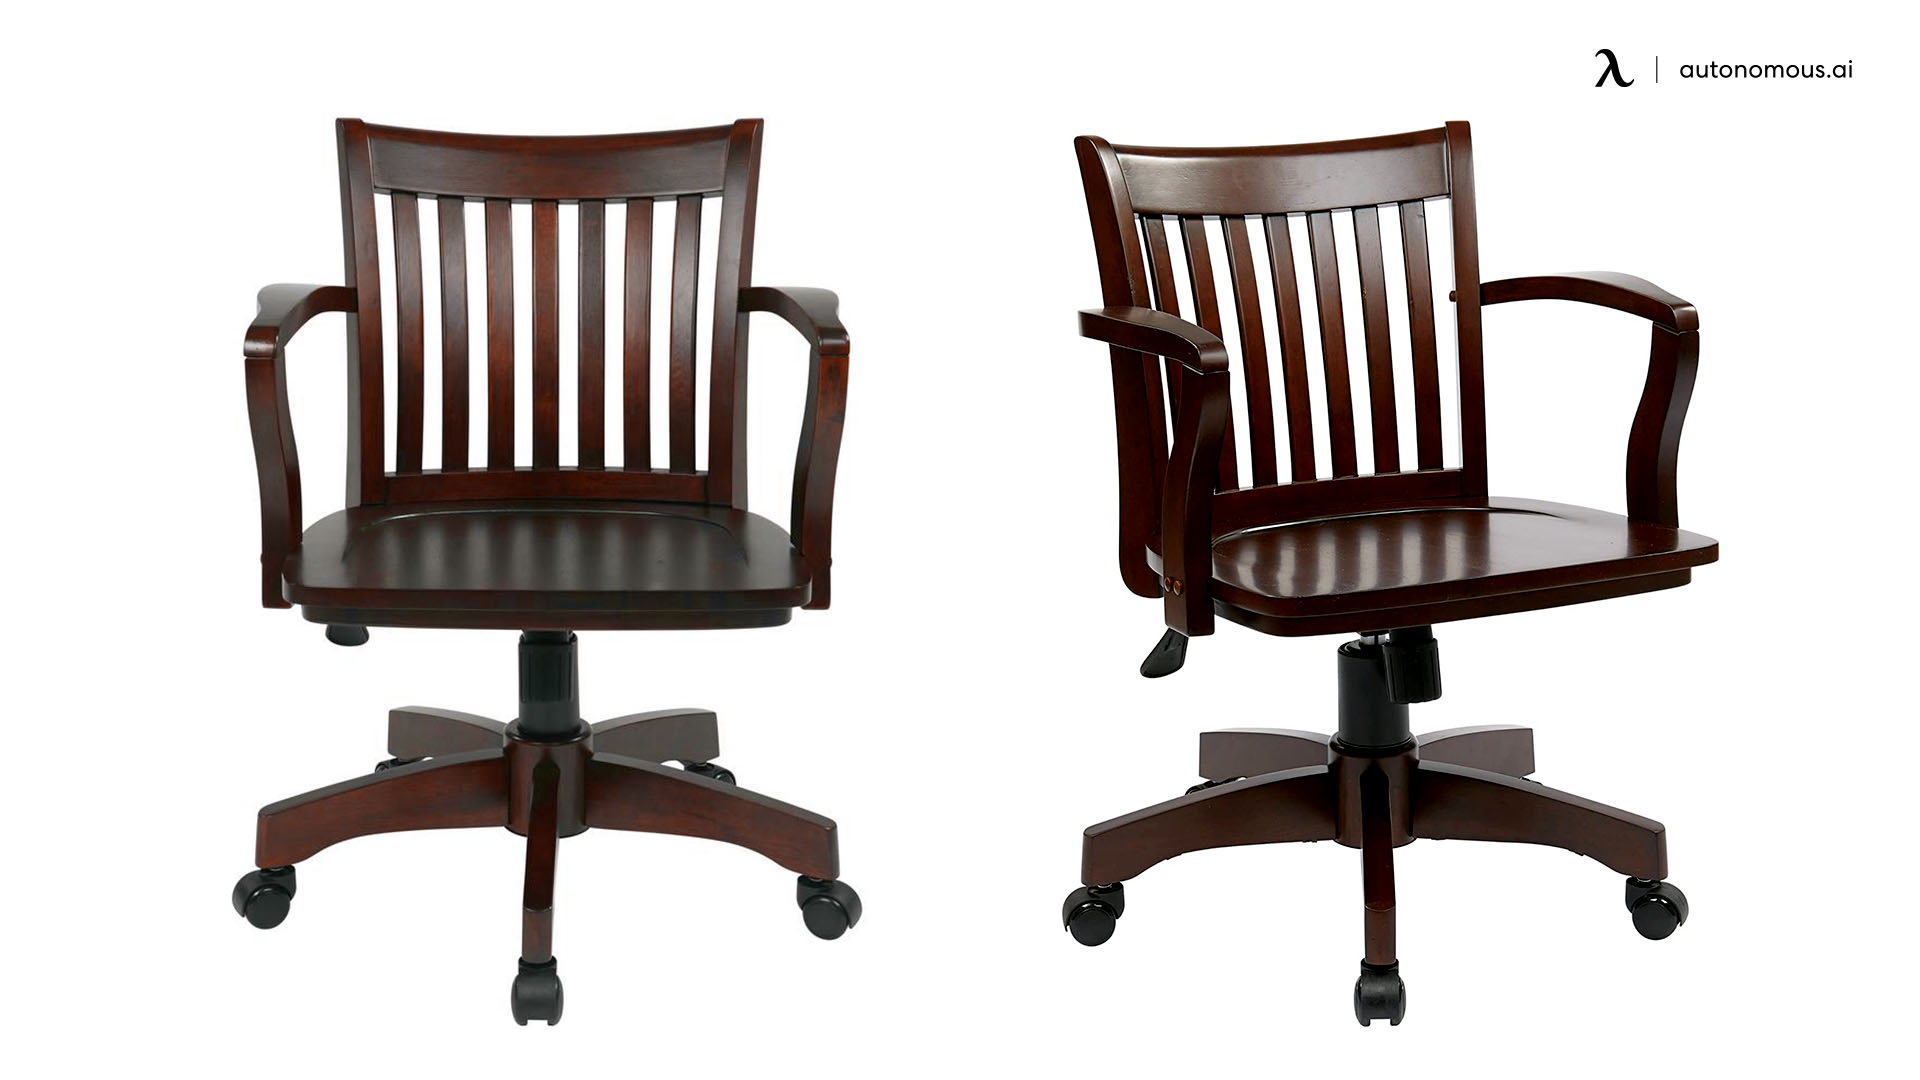 The OSP Home Furnishings Deluxe Wood Bankers desk chair